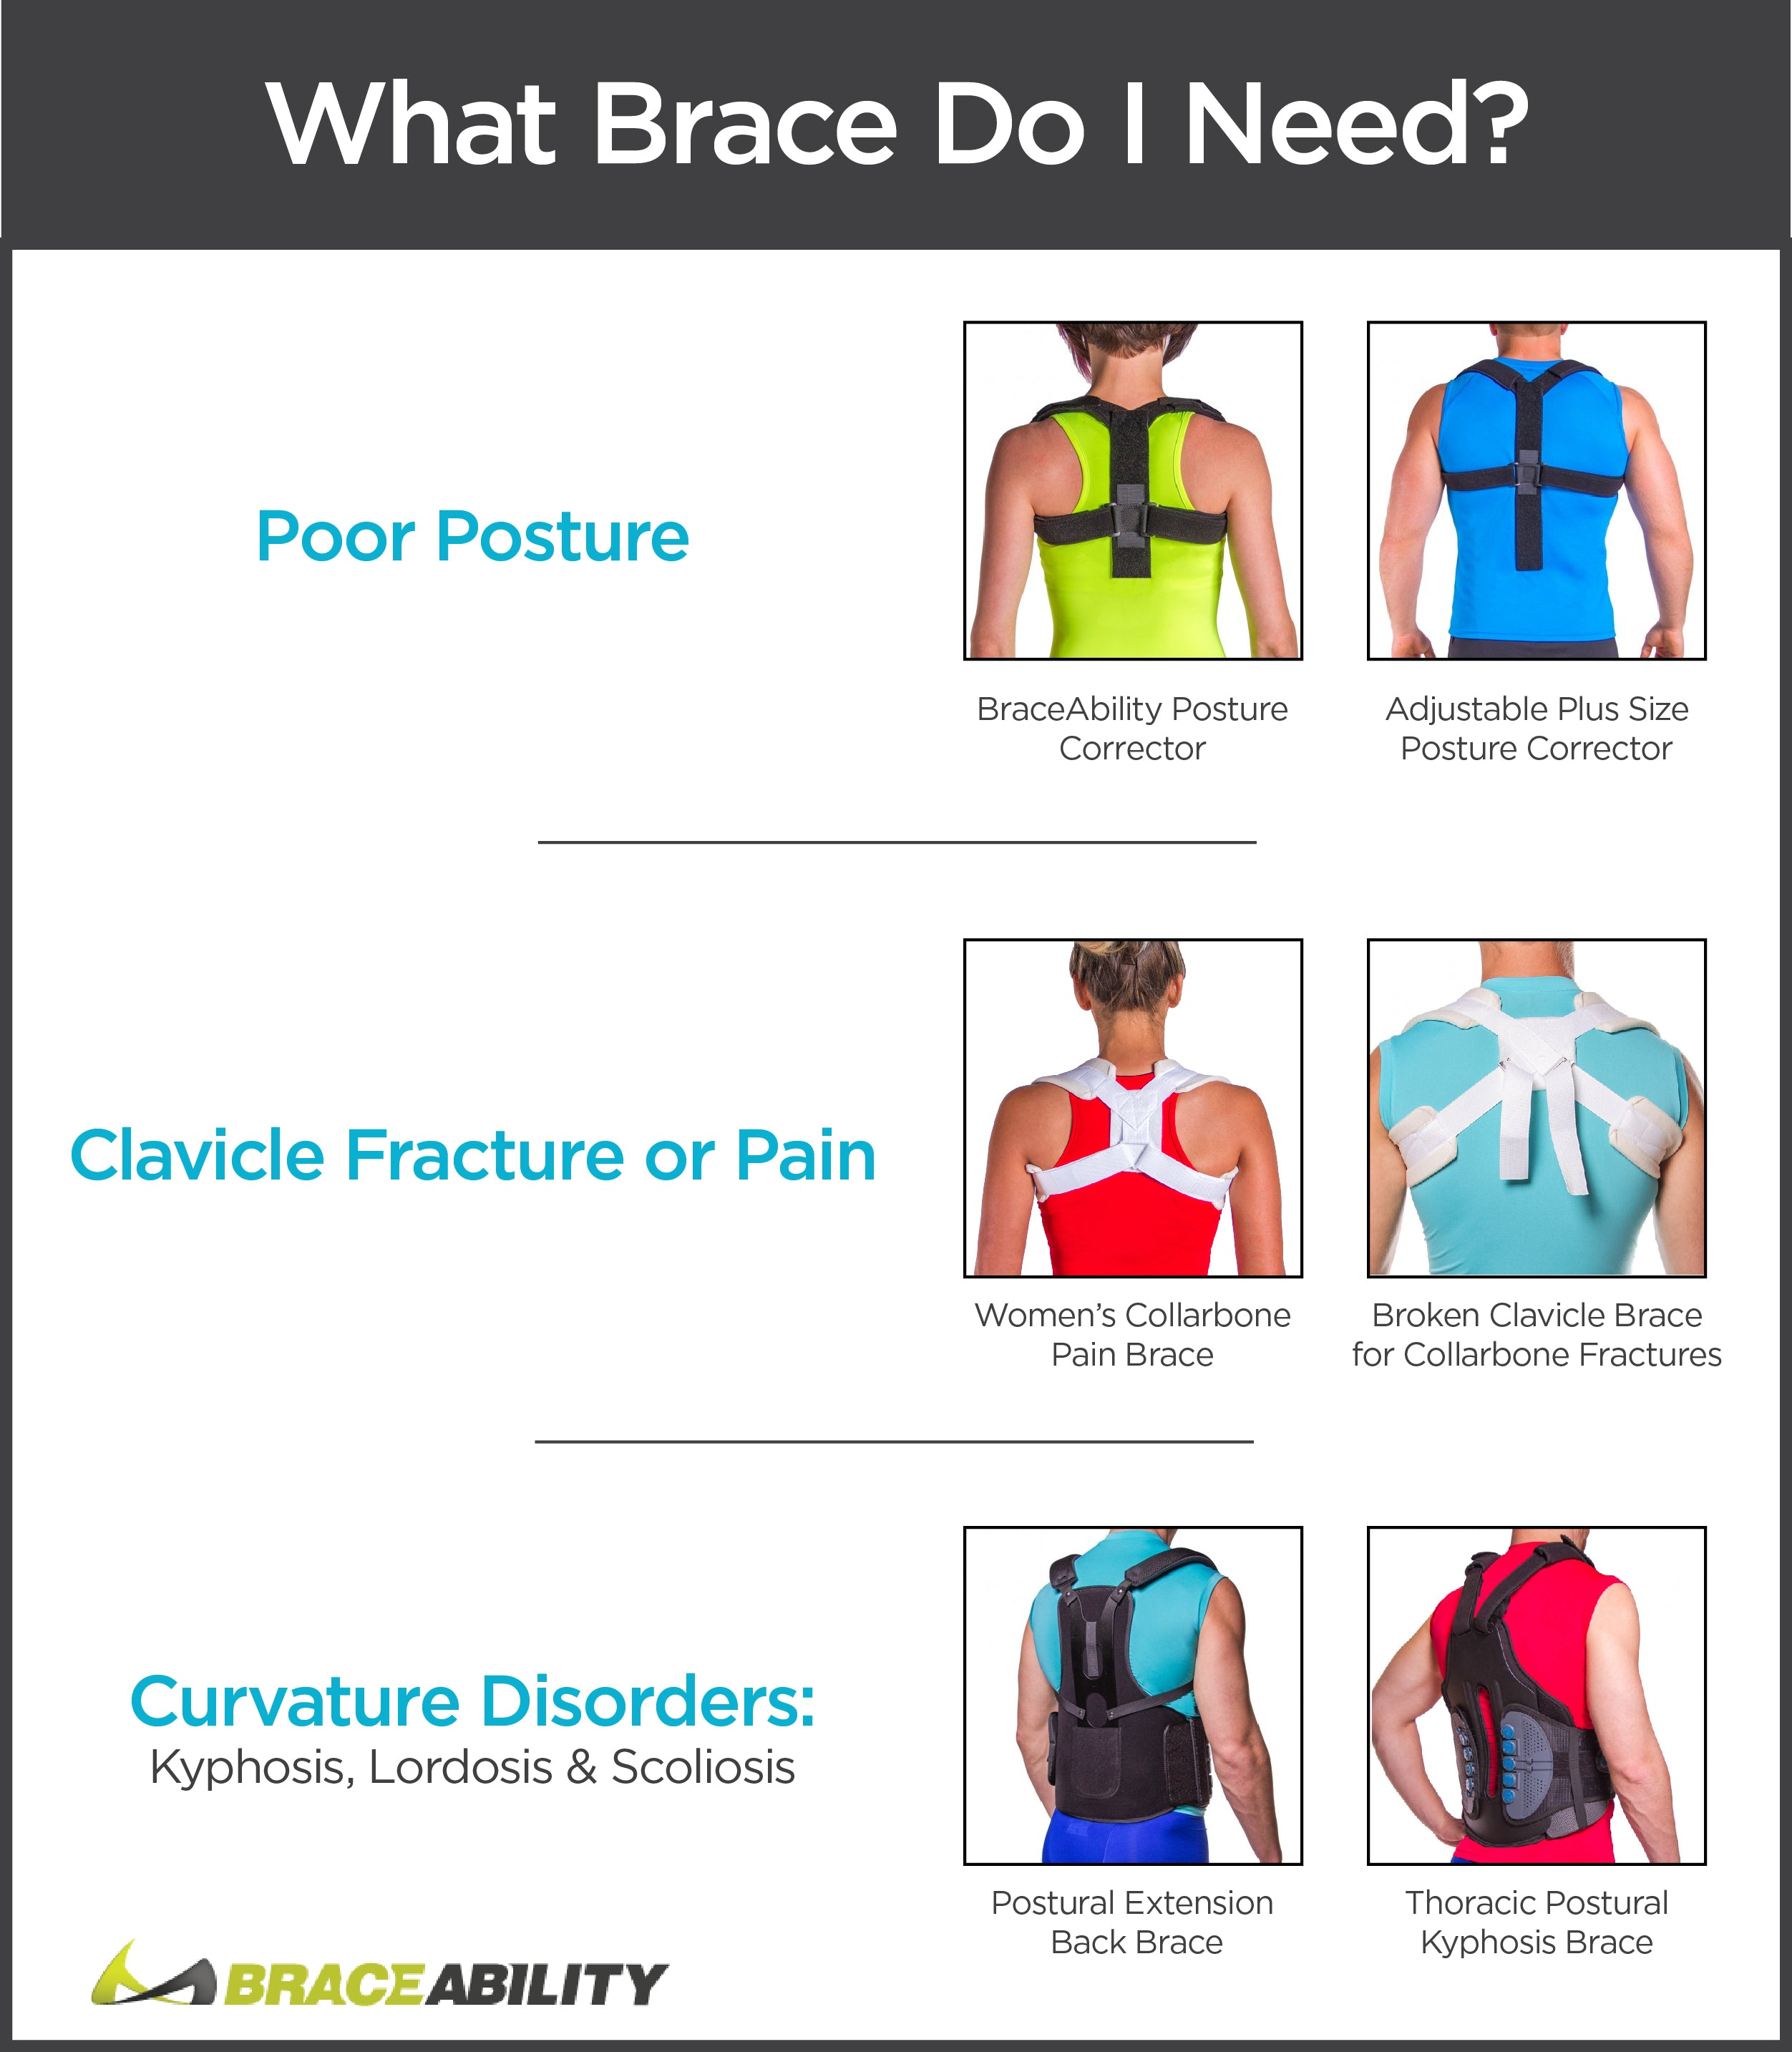 Find out what type of back straightener brace you need for your posture or curvature disorder